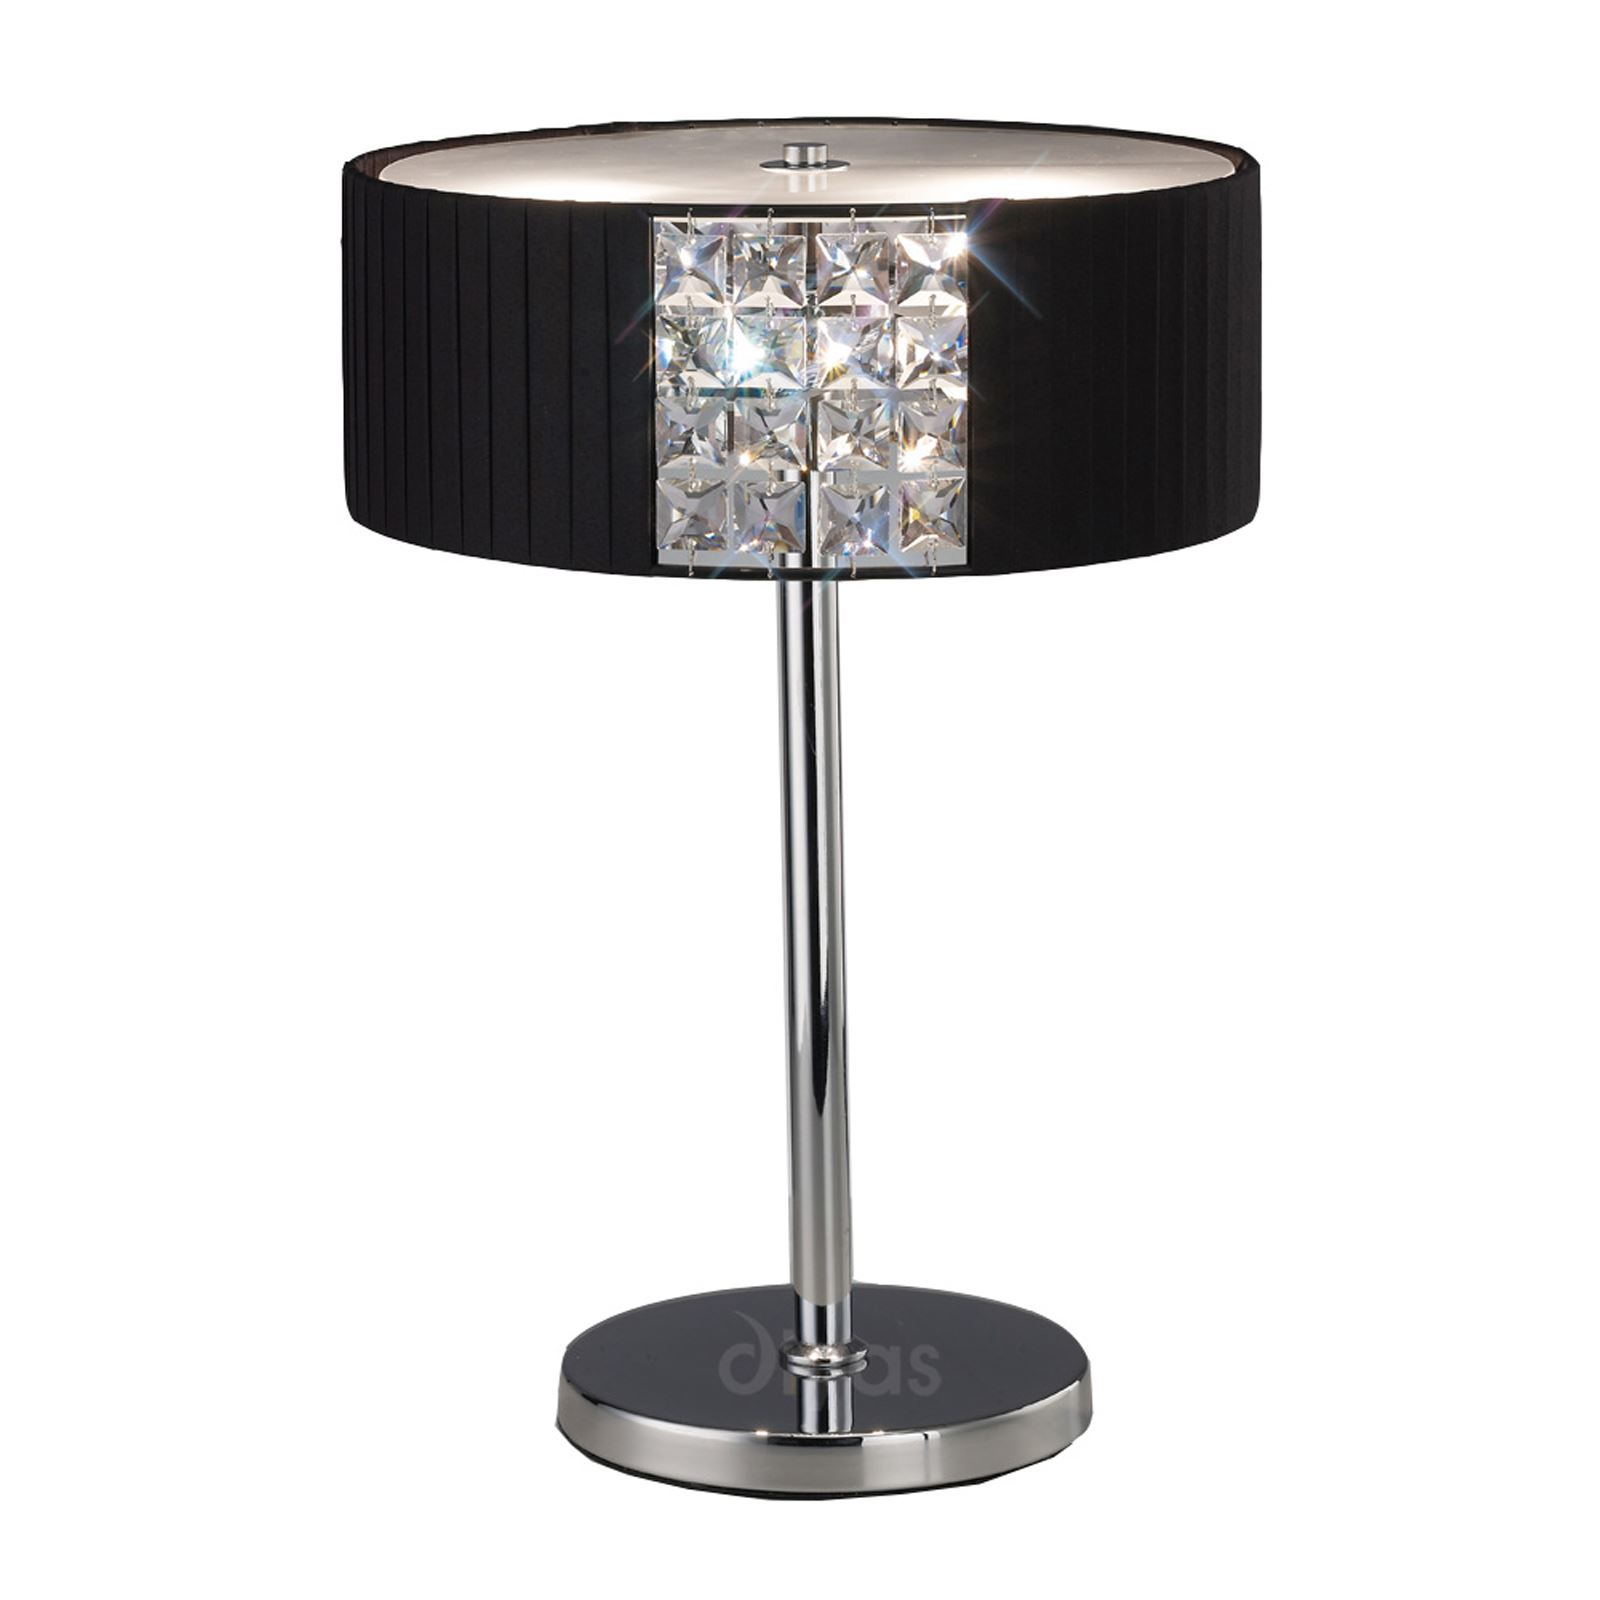 Round Crystal 2 Light Table Lamp With Black Shade - Contemporary Style